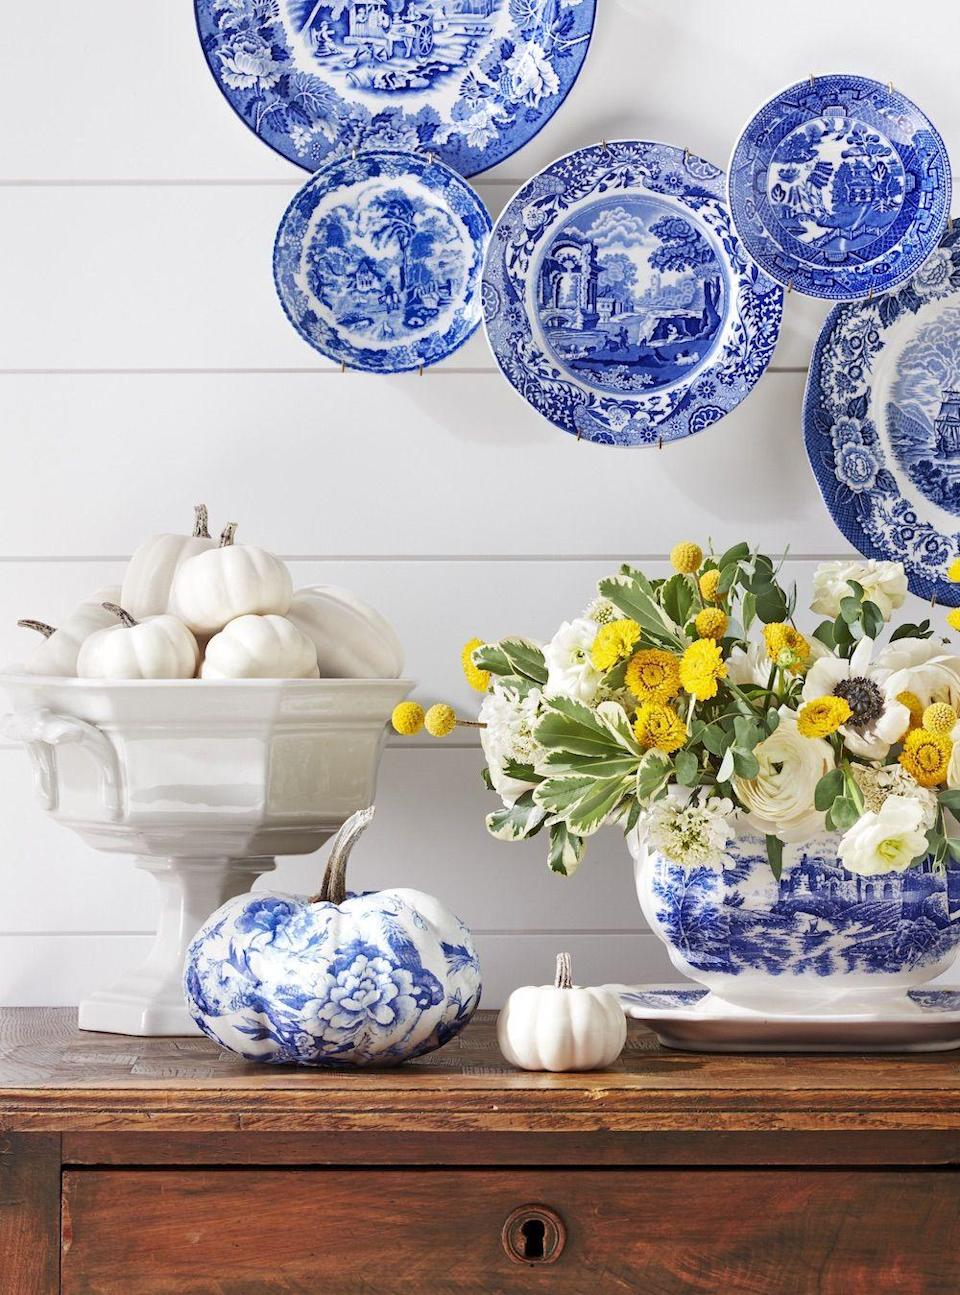 """<p>Update plain pumpkins by decoupaging them with paper napkins. This blue and white transferware print version is a country classic.</p><p><a class=""""link rapid-noclick-resp"""" href=""""https://www.amazon.com/Decorative-Napkins-Cocktail-Beverage-Birthday/dp/B07PQHYM6B/ref=psdc_15347411_t2_B07DT9B637?tag=syn-yahoo-20&ascsubtag=%5Bartid%7C10050.g.3739%5Bsrc%7Cyahoo-us"""" rel=""""nofollow noopener"""" target=""""_blank"""" data-ylk=""""slk:SHOP BLUE & WHITE NAPKINS"""">SHOP BLUE & WHITE NAPKINS </a></p>"""